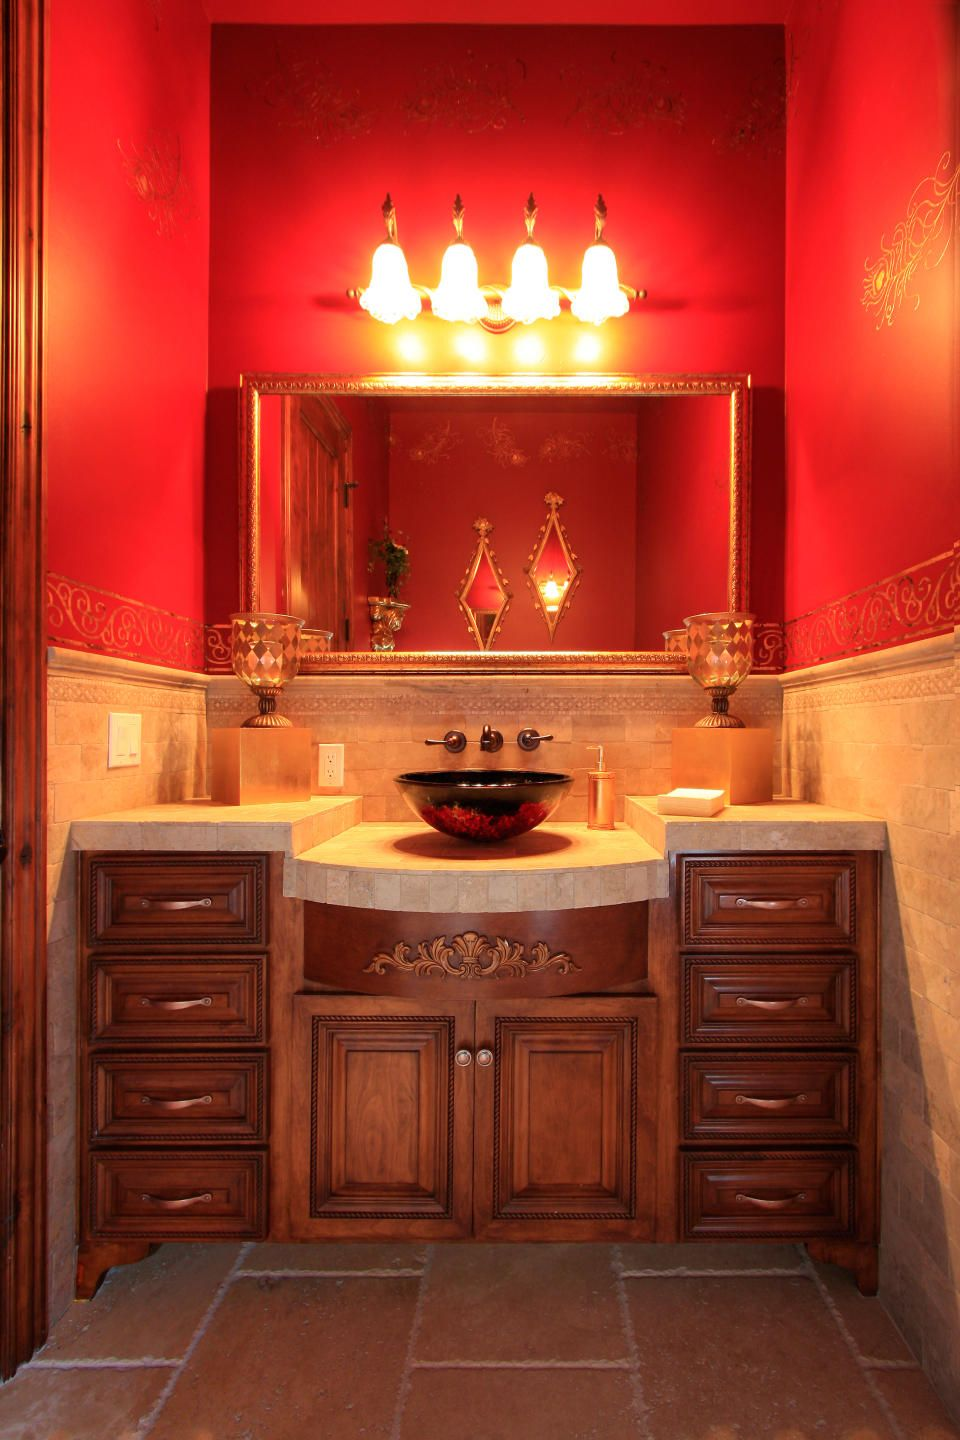 Tuscan wall decor bathroom - Comely Pictures For Tuscan Bathroom Decorating Design Ideas Archaic Picture Of Tuscan Bathroom Decoration Using